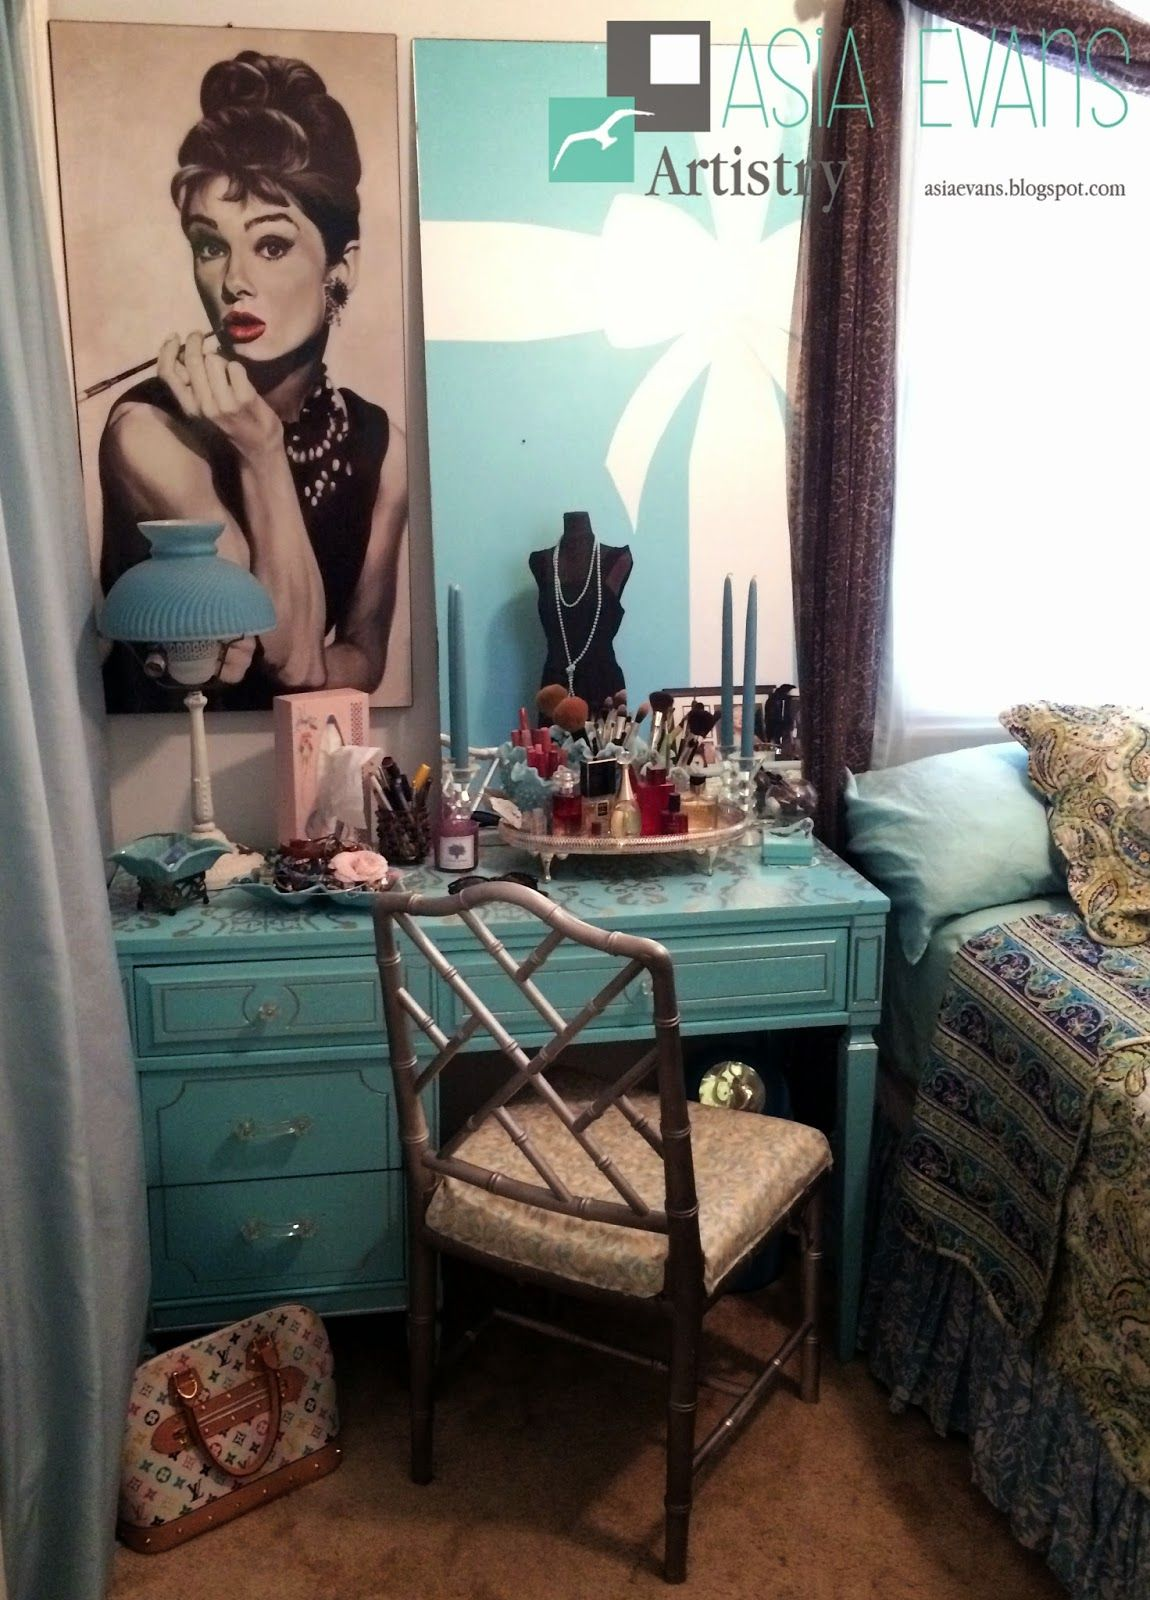 Tiffany Bow Mural Audrey Hepburn Asia Evans Artisry Breakfast At S Themed Room